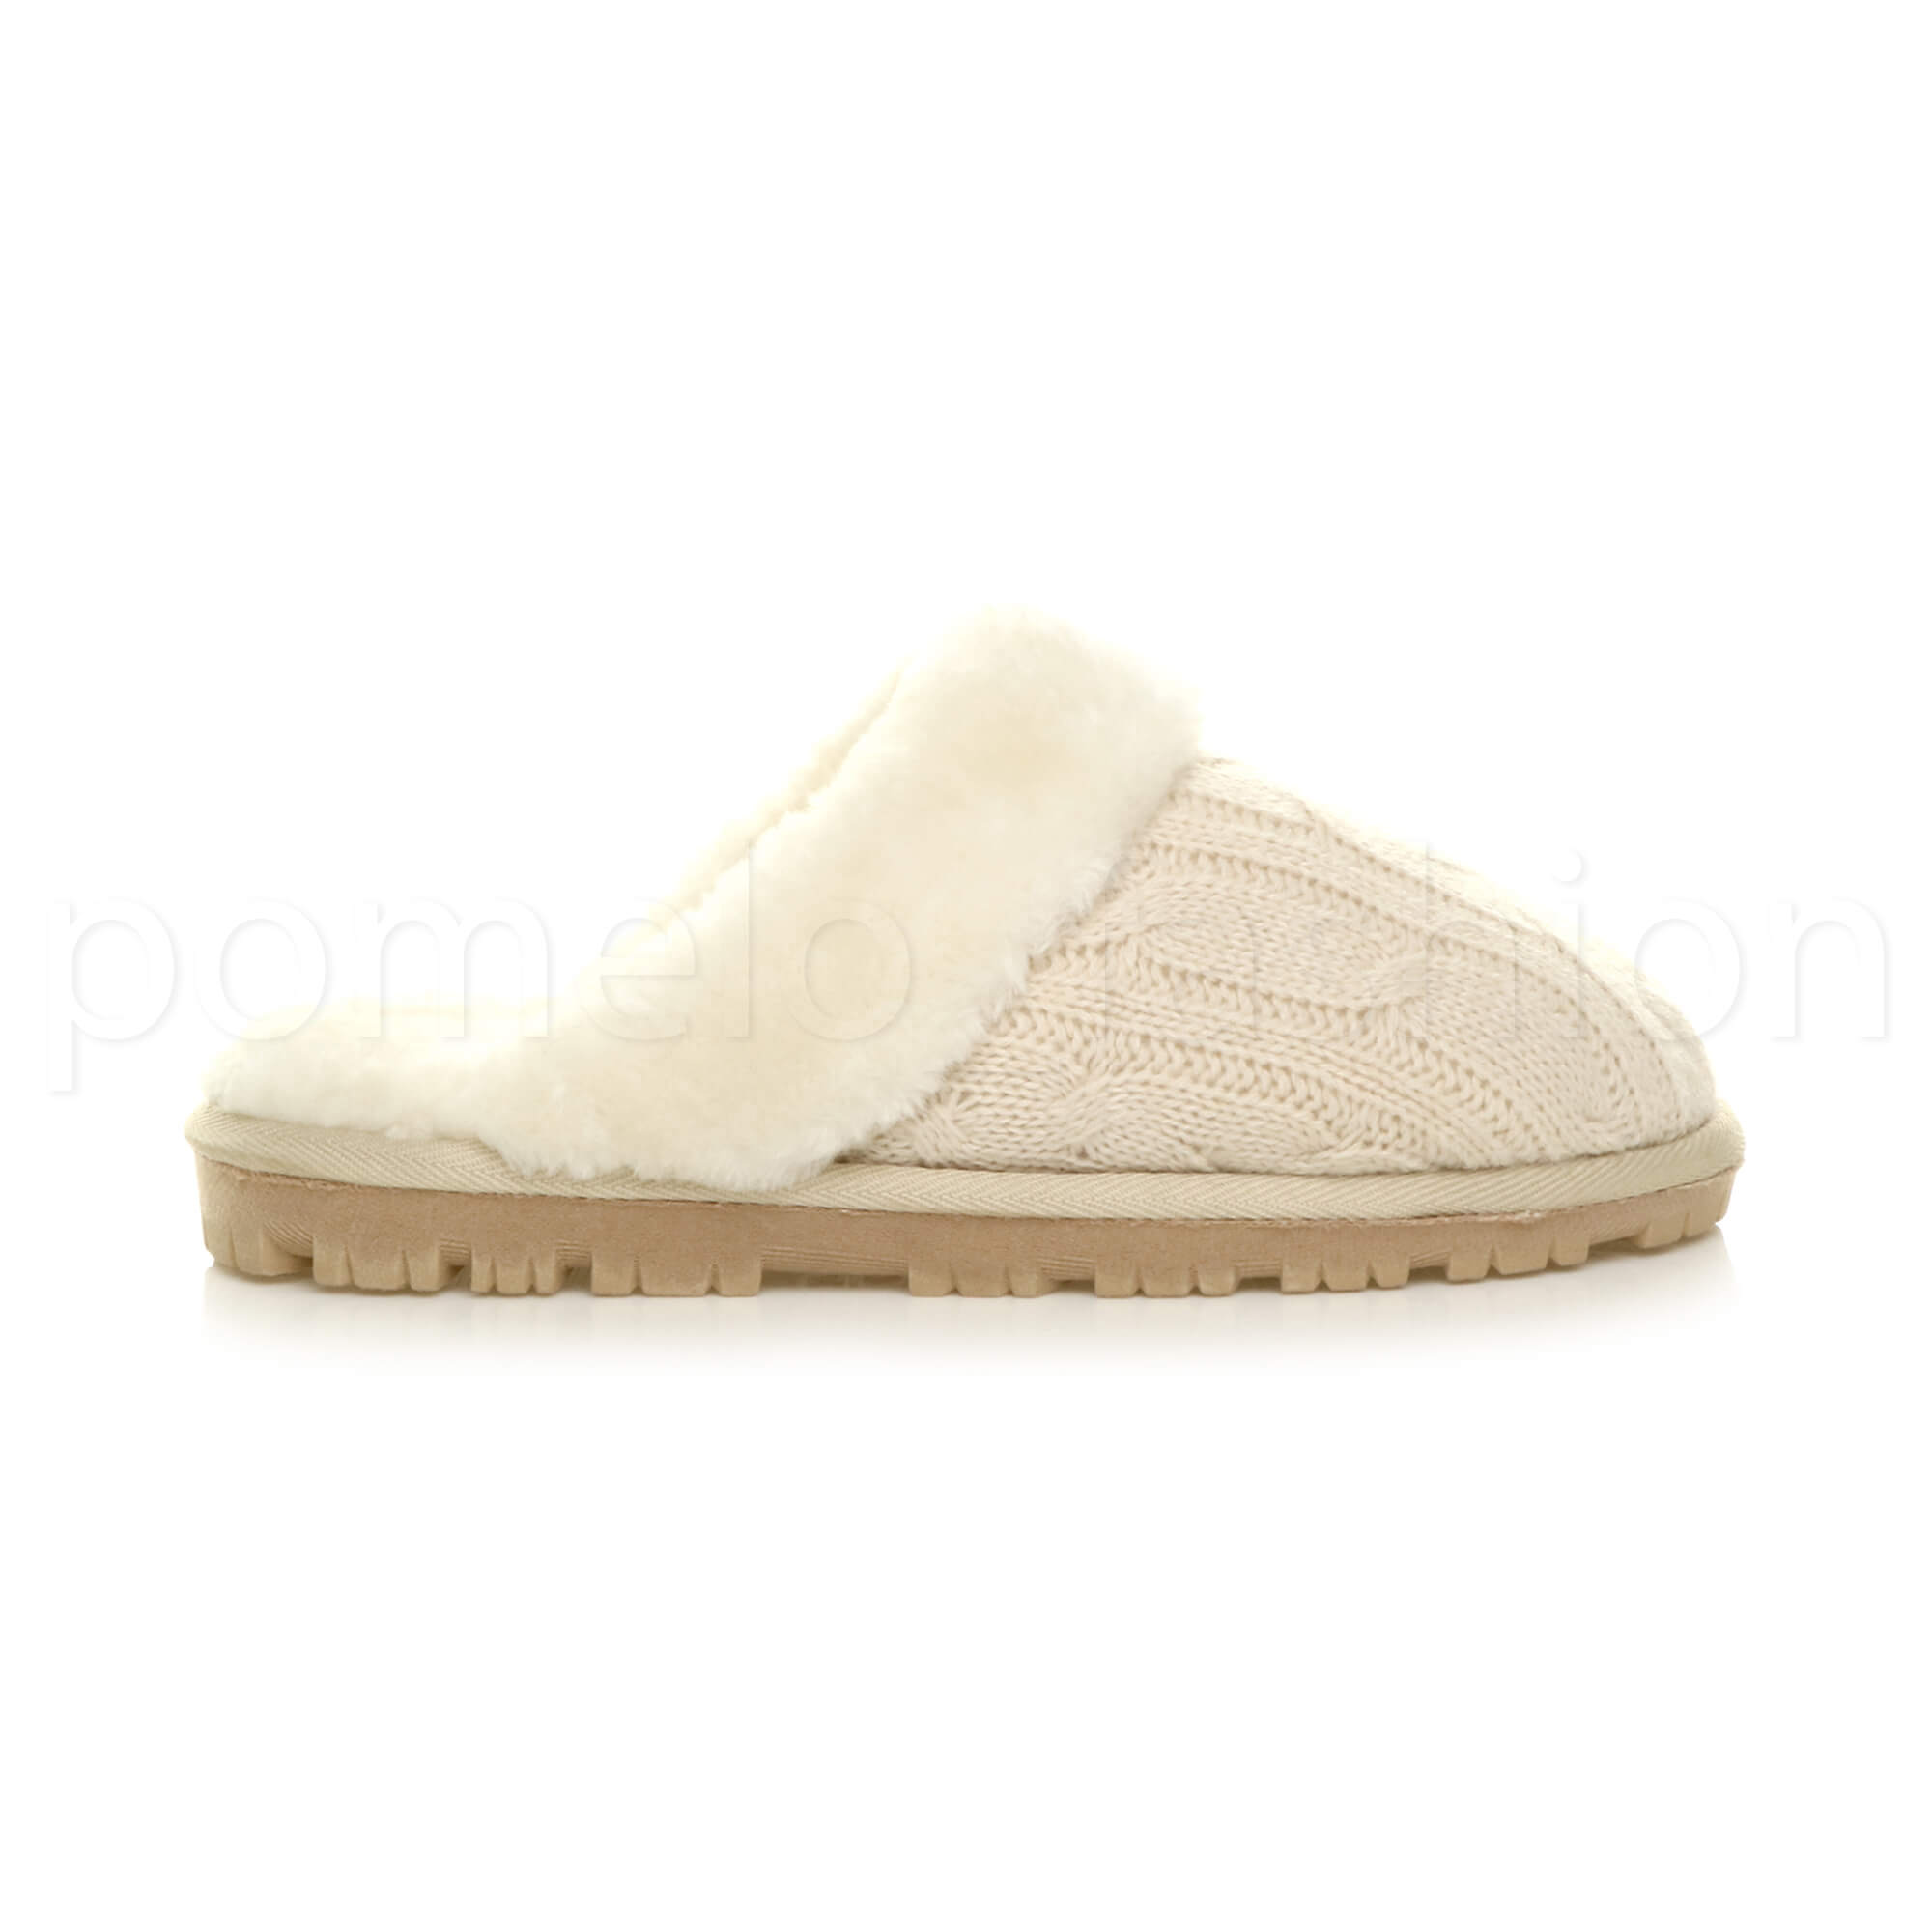 WOMENS-LADIES-FLAT-FUR-LINED-COMFORTABLE-WINTER-MULES-SLIPPERS-HOUSE-SHOES-SIZE thumbnail 10